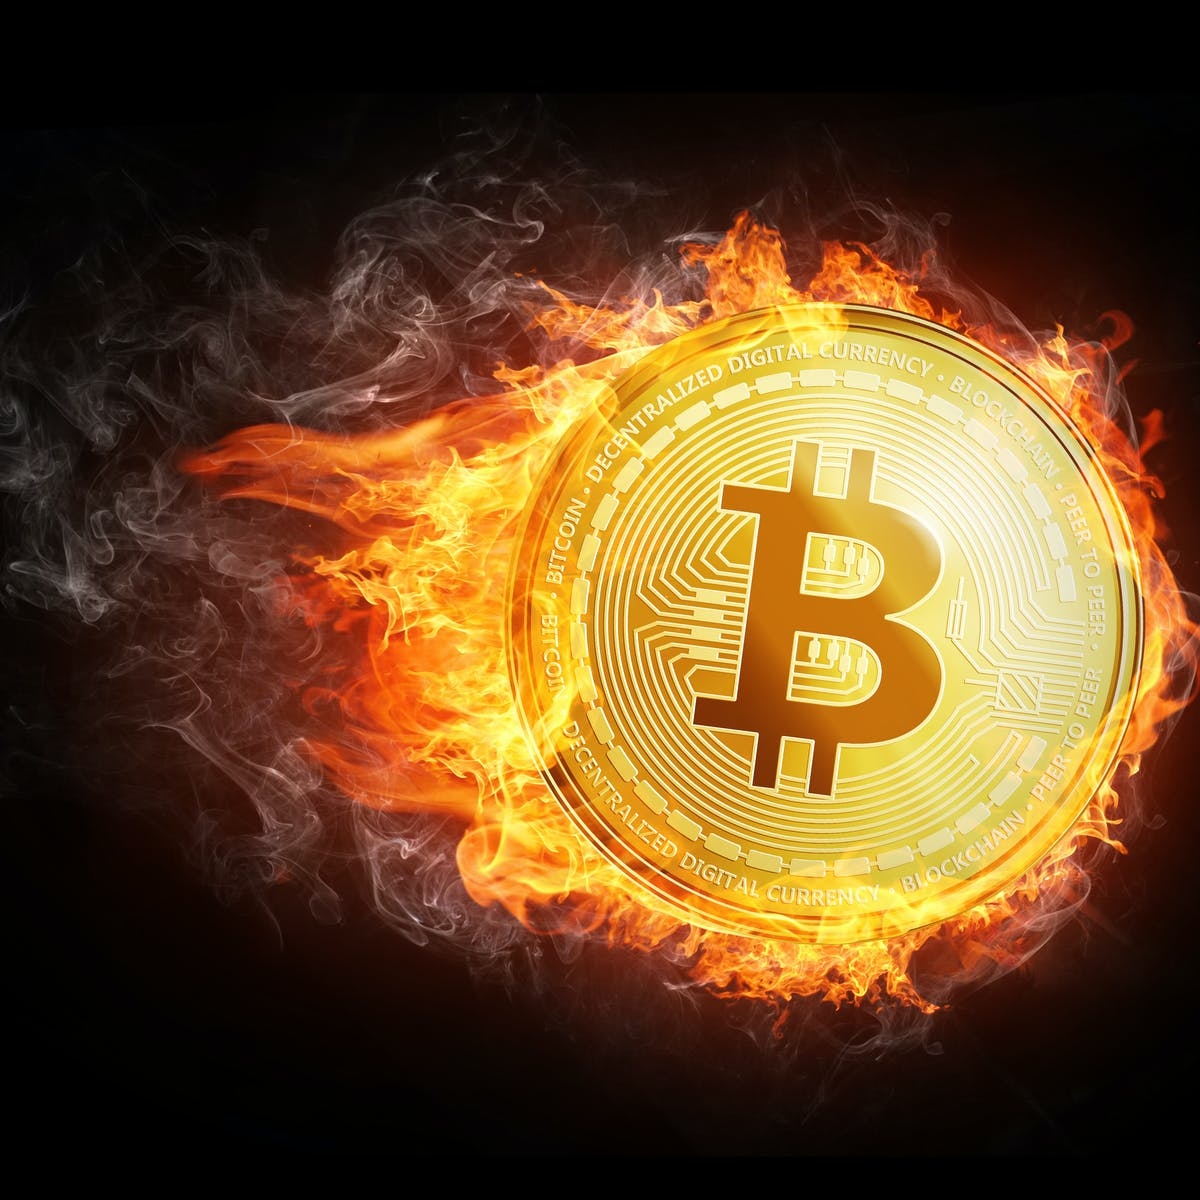 SEC Chairman Gensler Says Bitcoin Speculative Assets